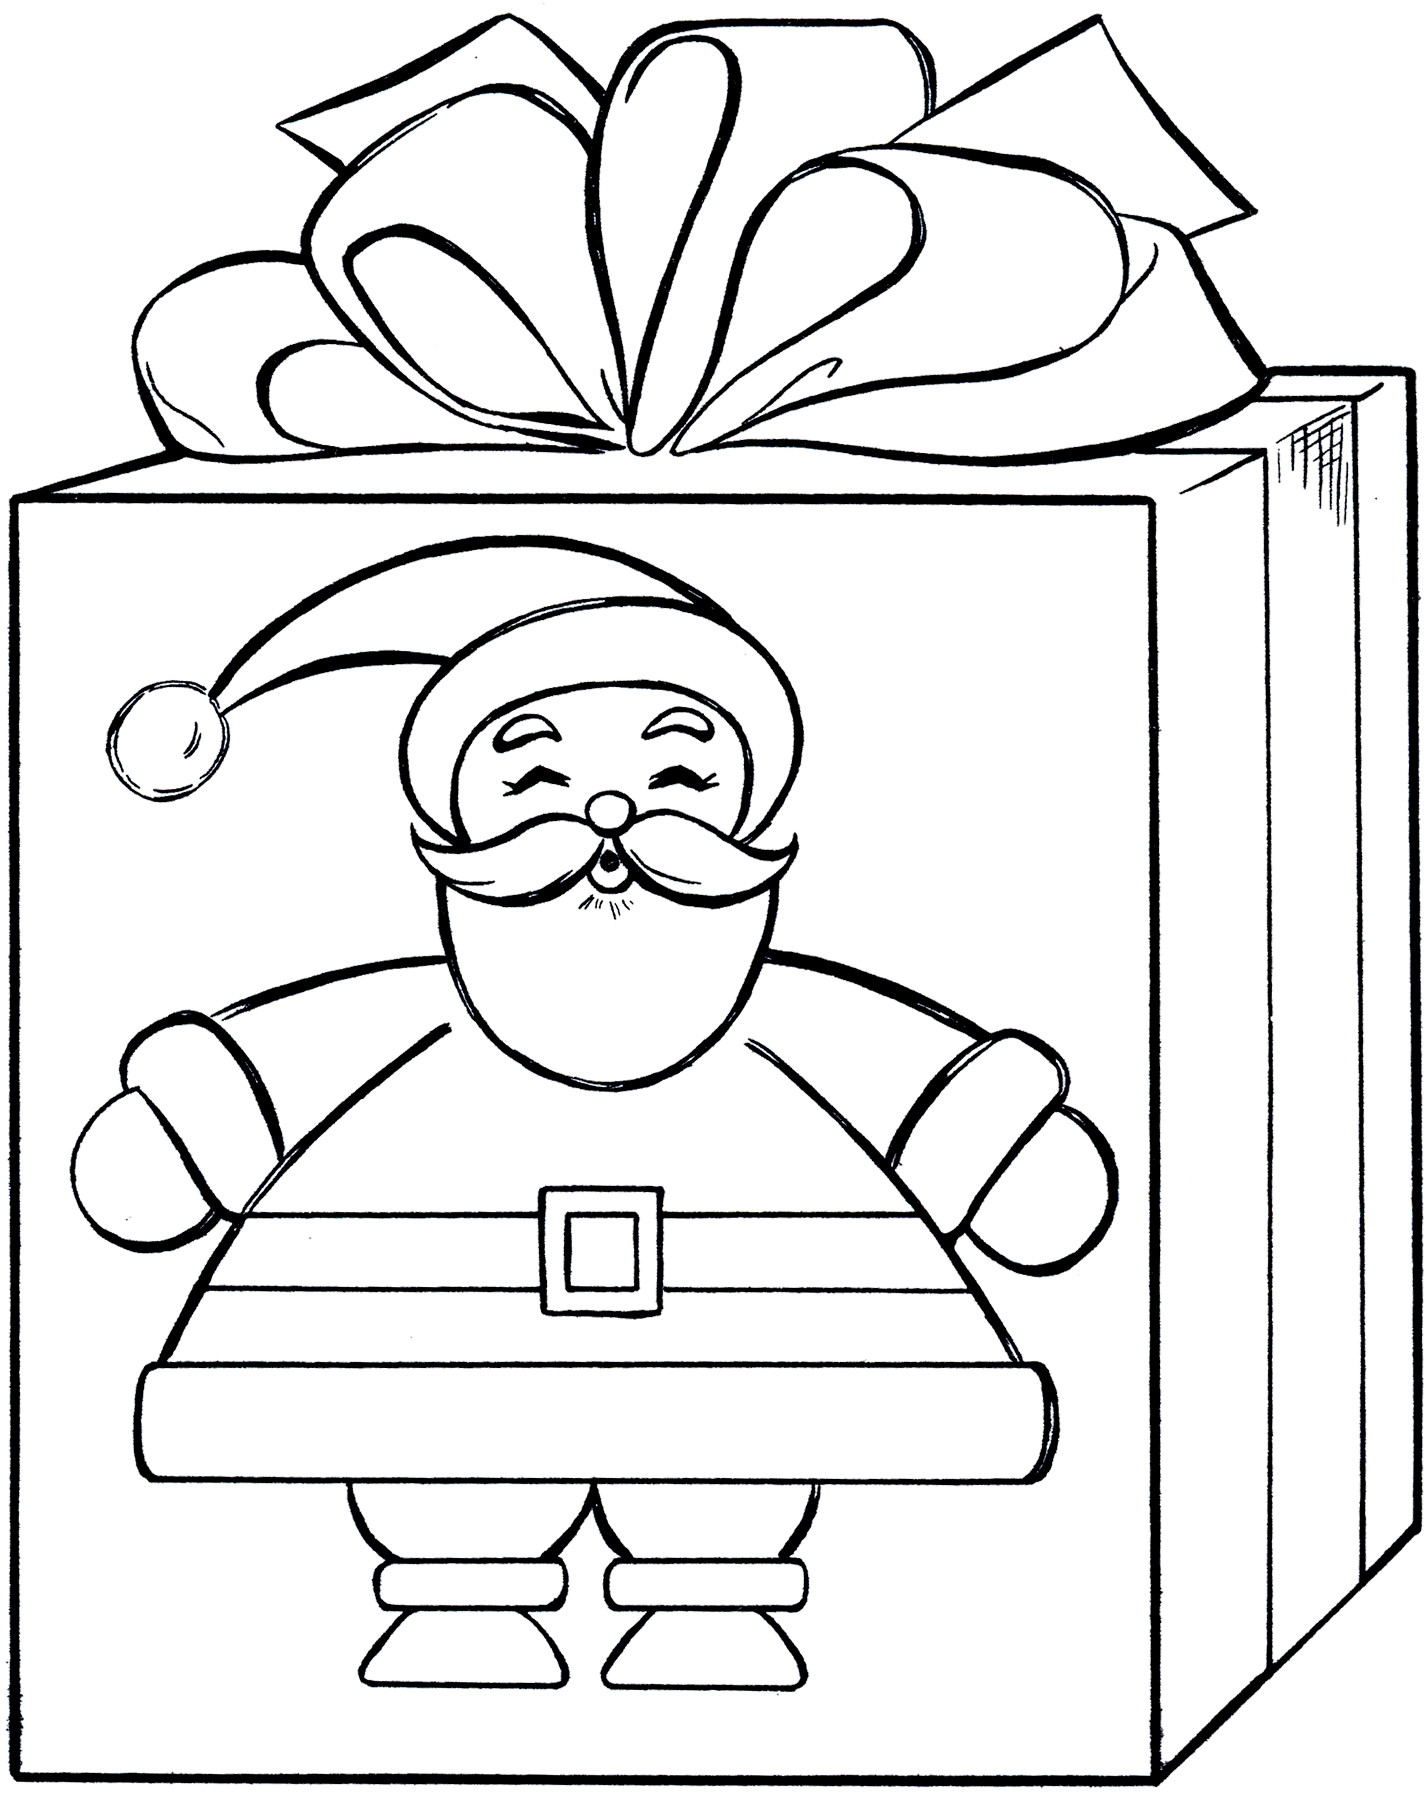 1424x1800 Christmas Gifts Coloring Pages Free Showy Gift Page Tixac